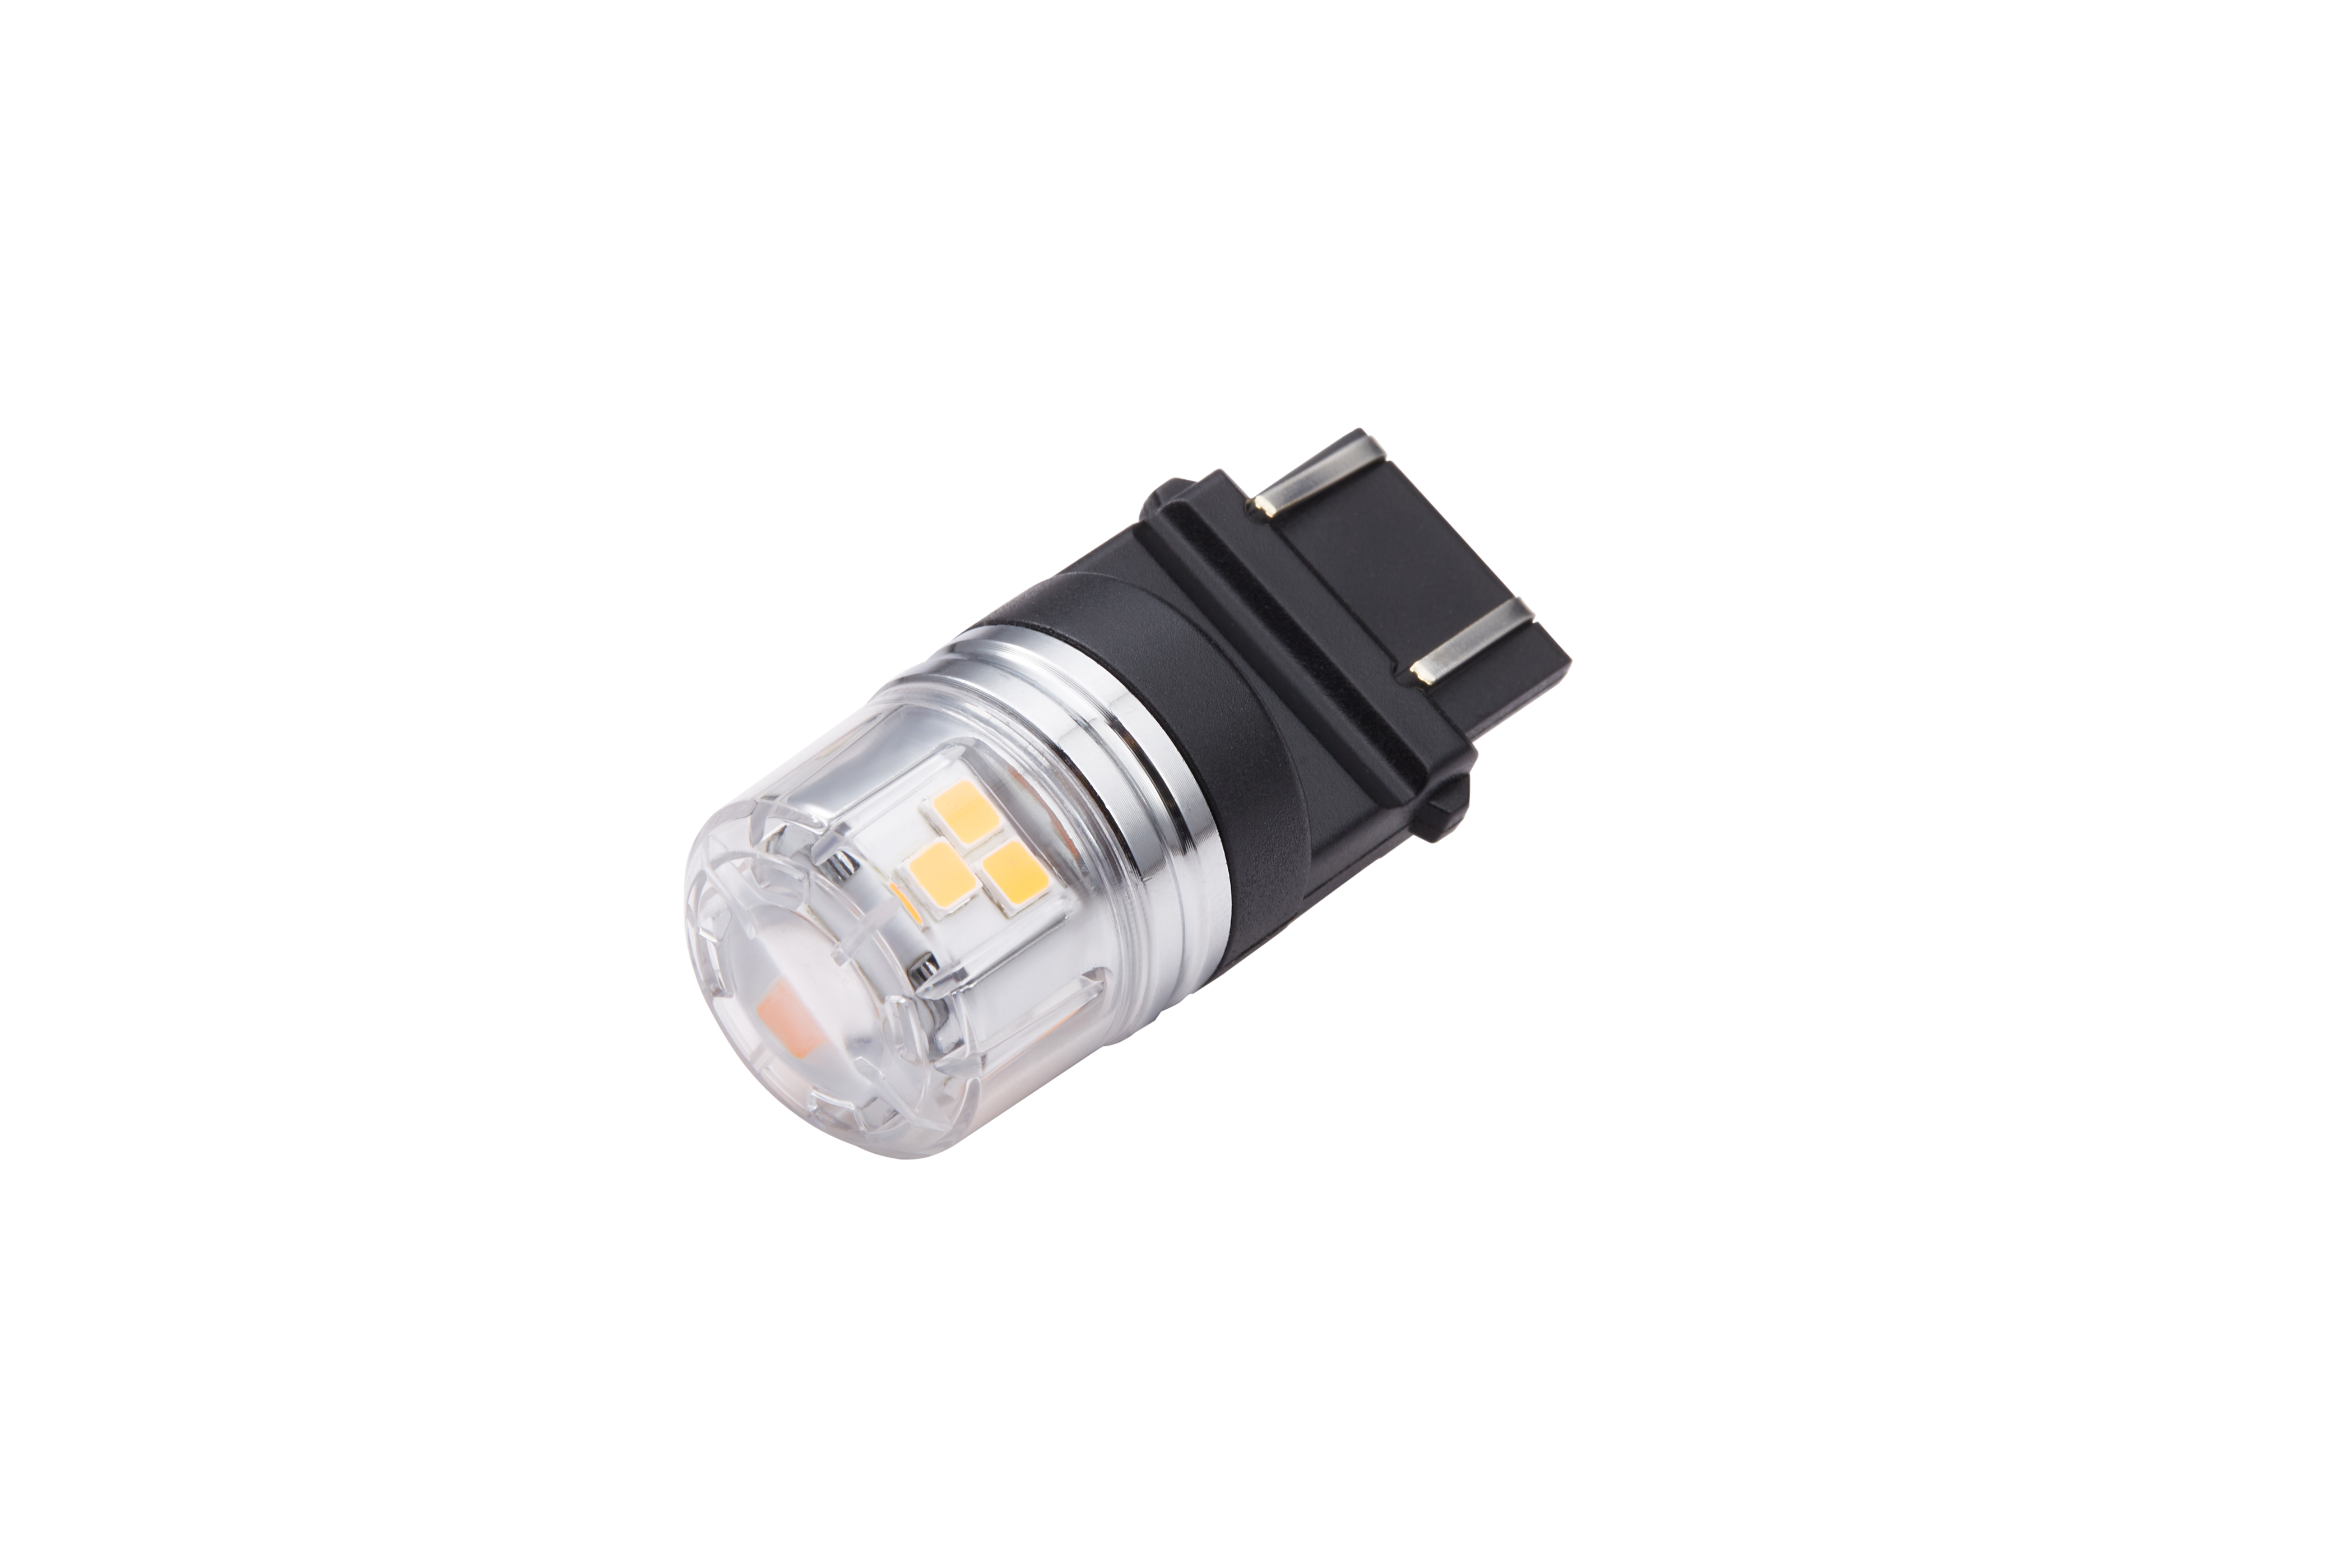 Eklight Canbus BAU15S BA15S 1156 1157 BAY15D Amber turn signal light T20 White DRL light Featured Image